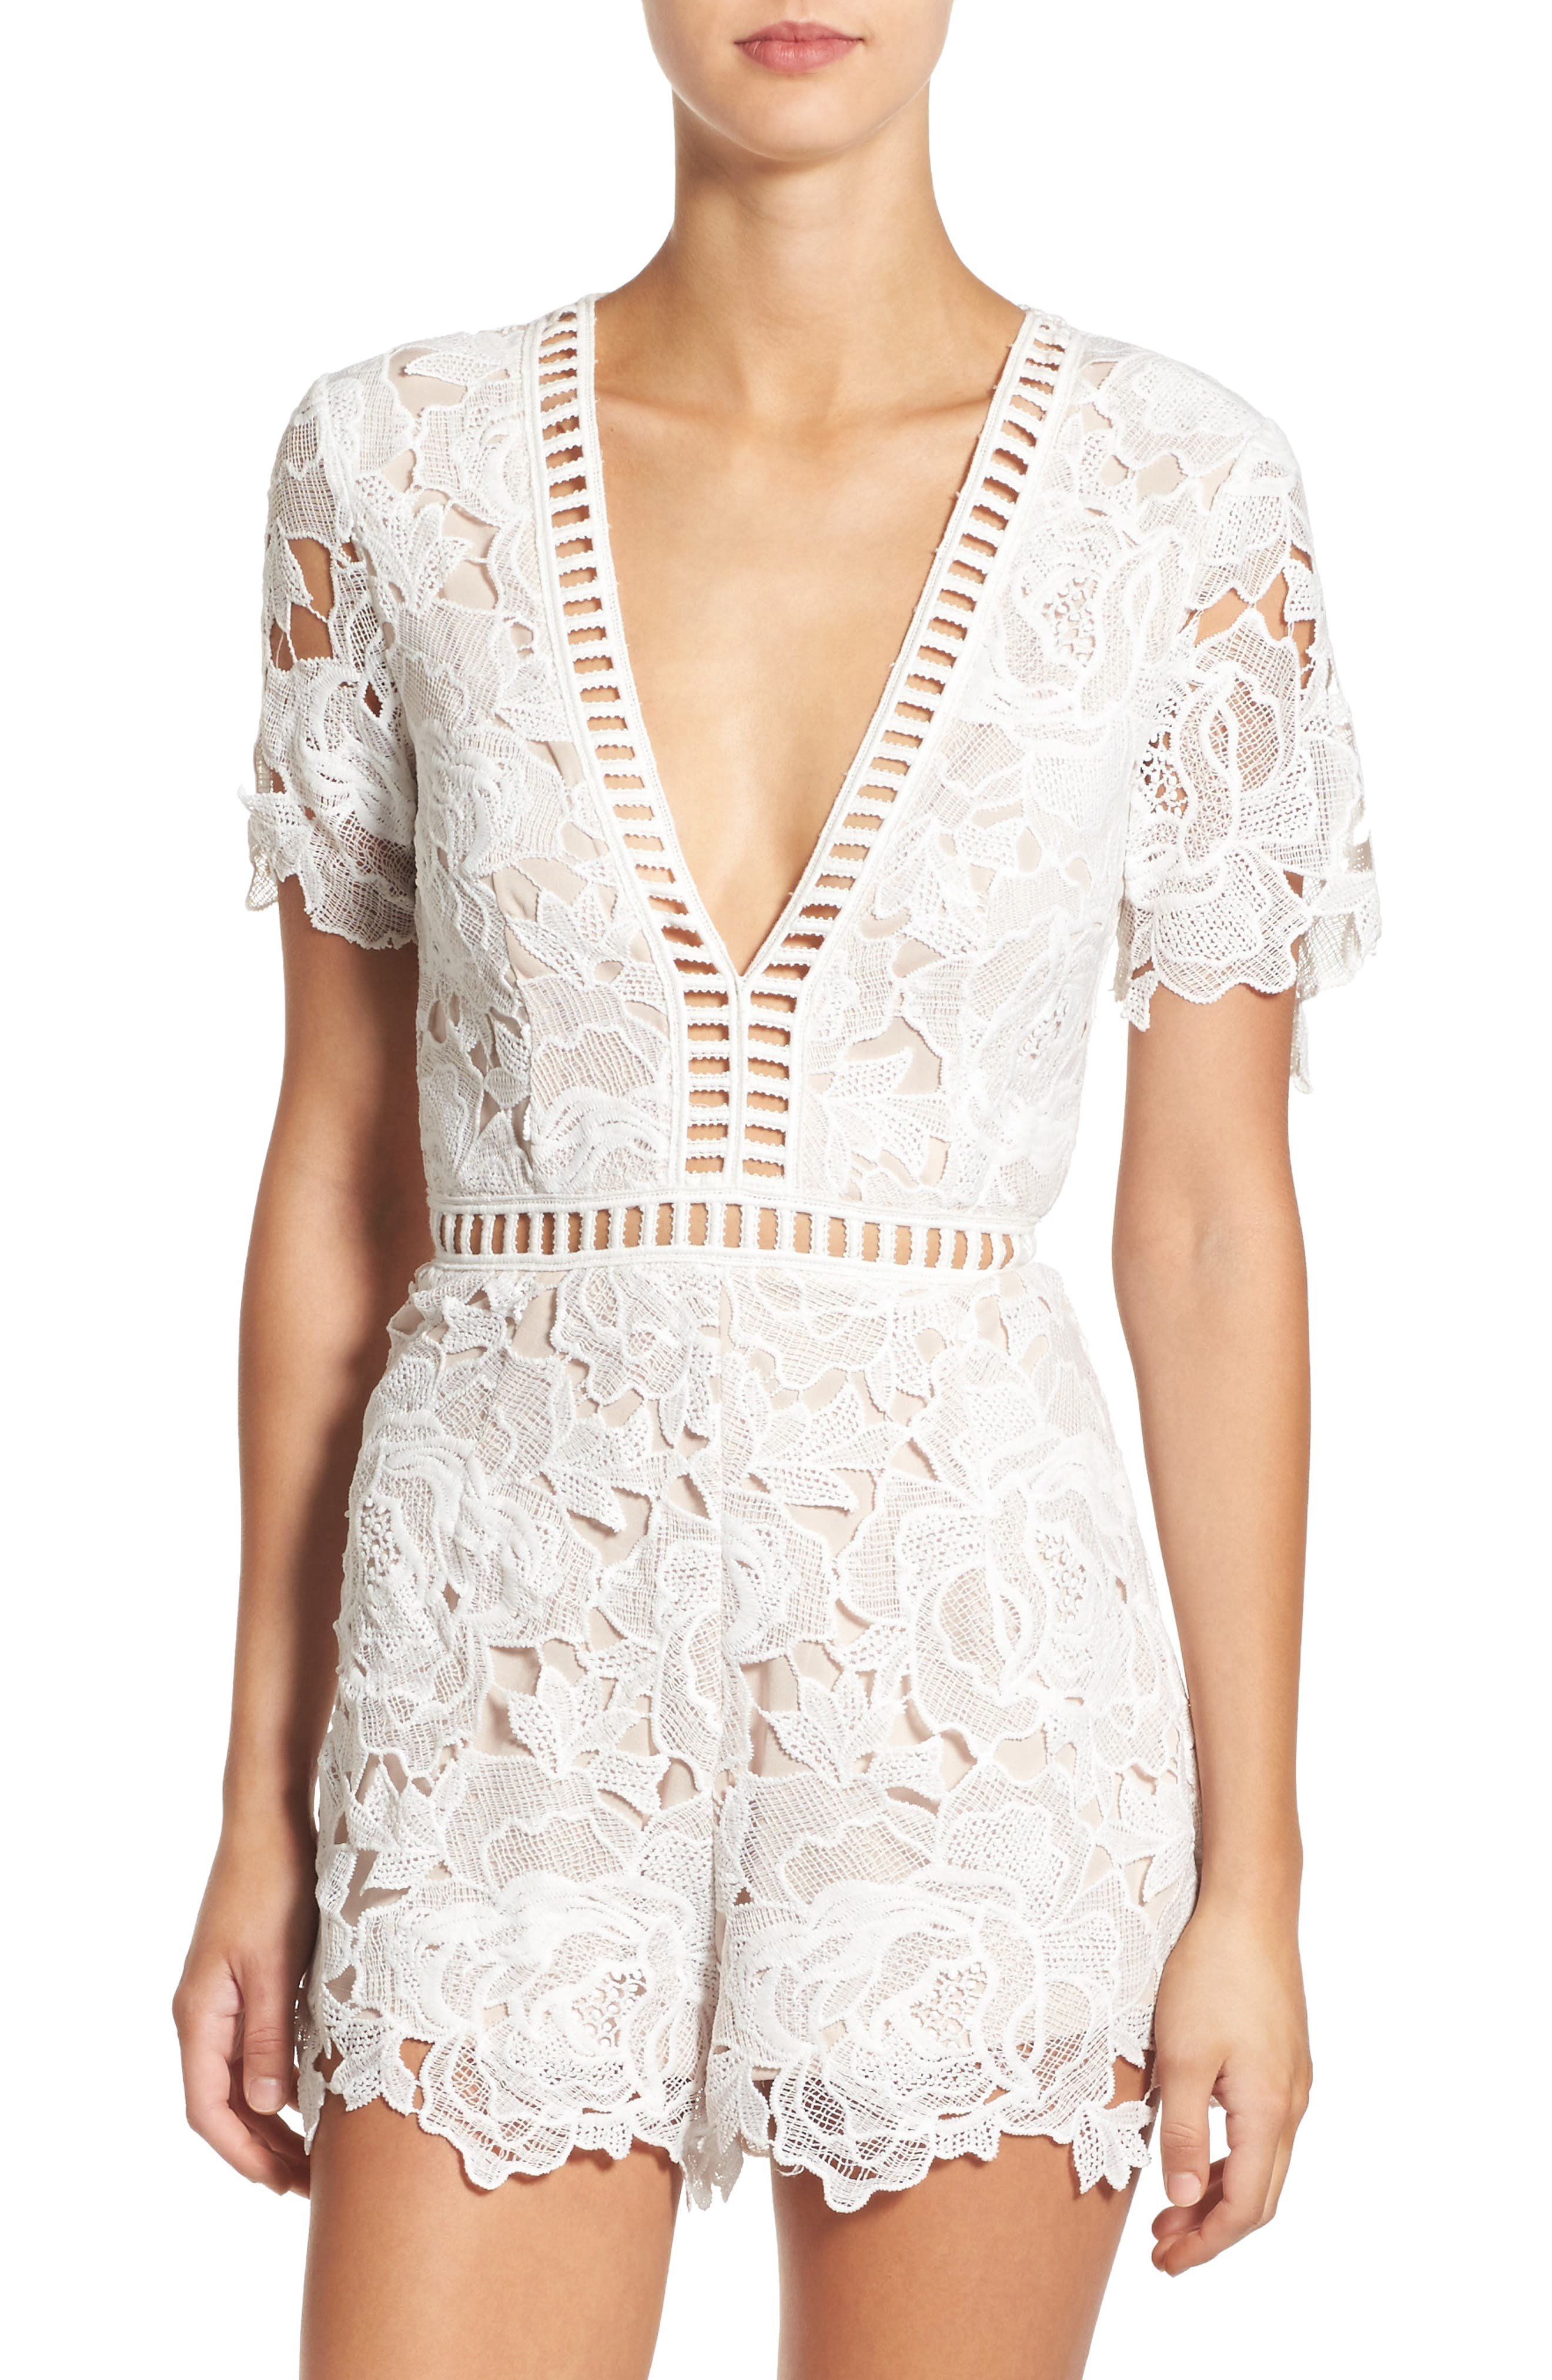 Ladder Inset Lace Romper,                         Main,                         color, White/ Nude